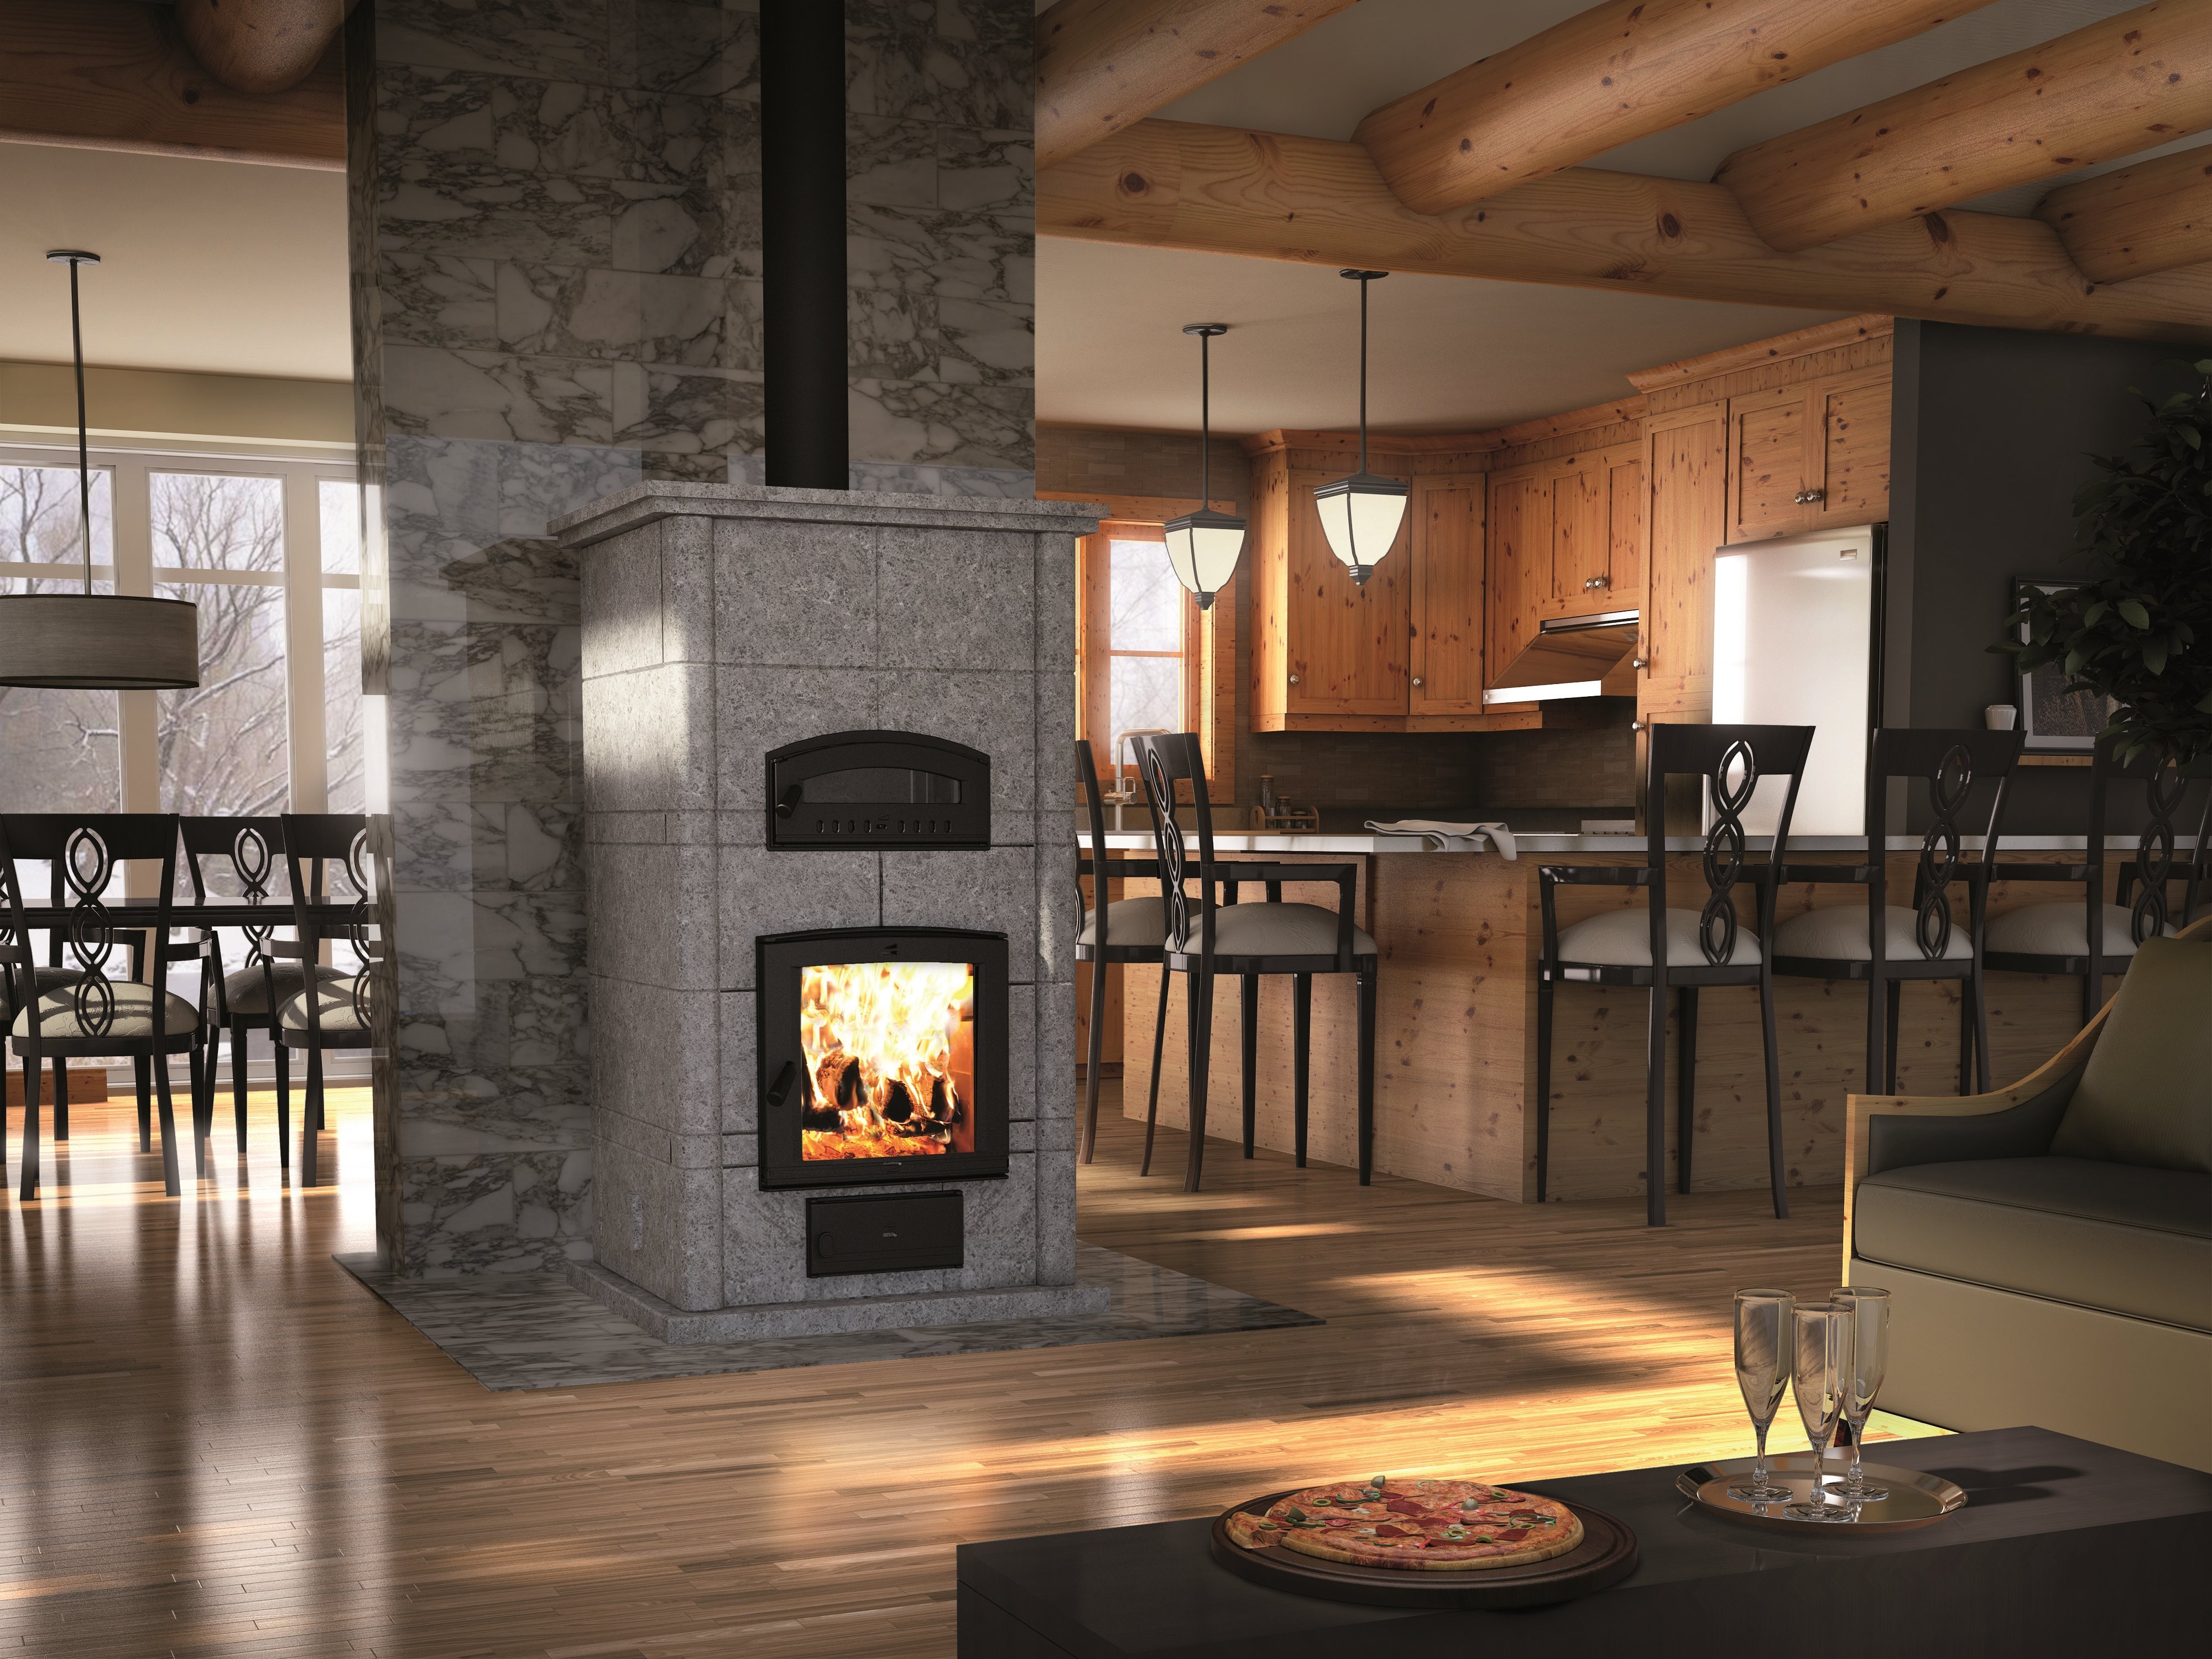 fireplace amazon dp gel com view mount black fuel arch larger digital sei top wall